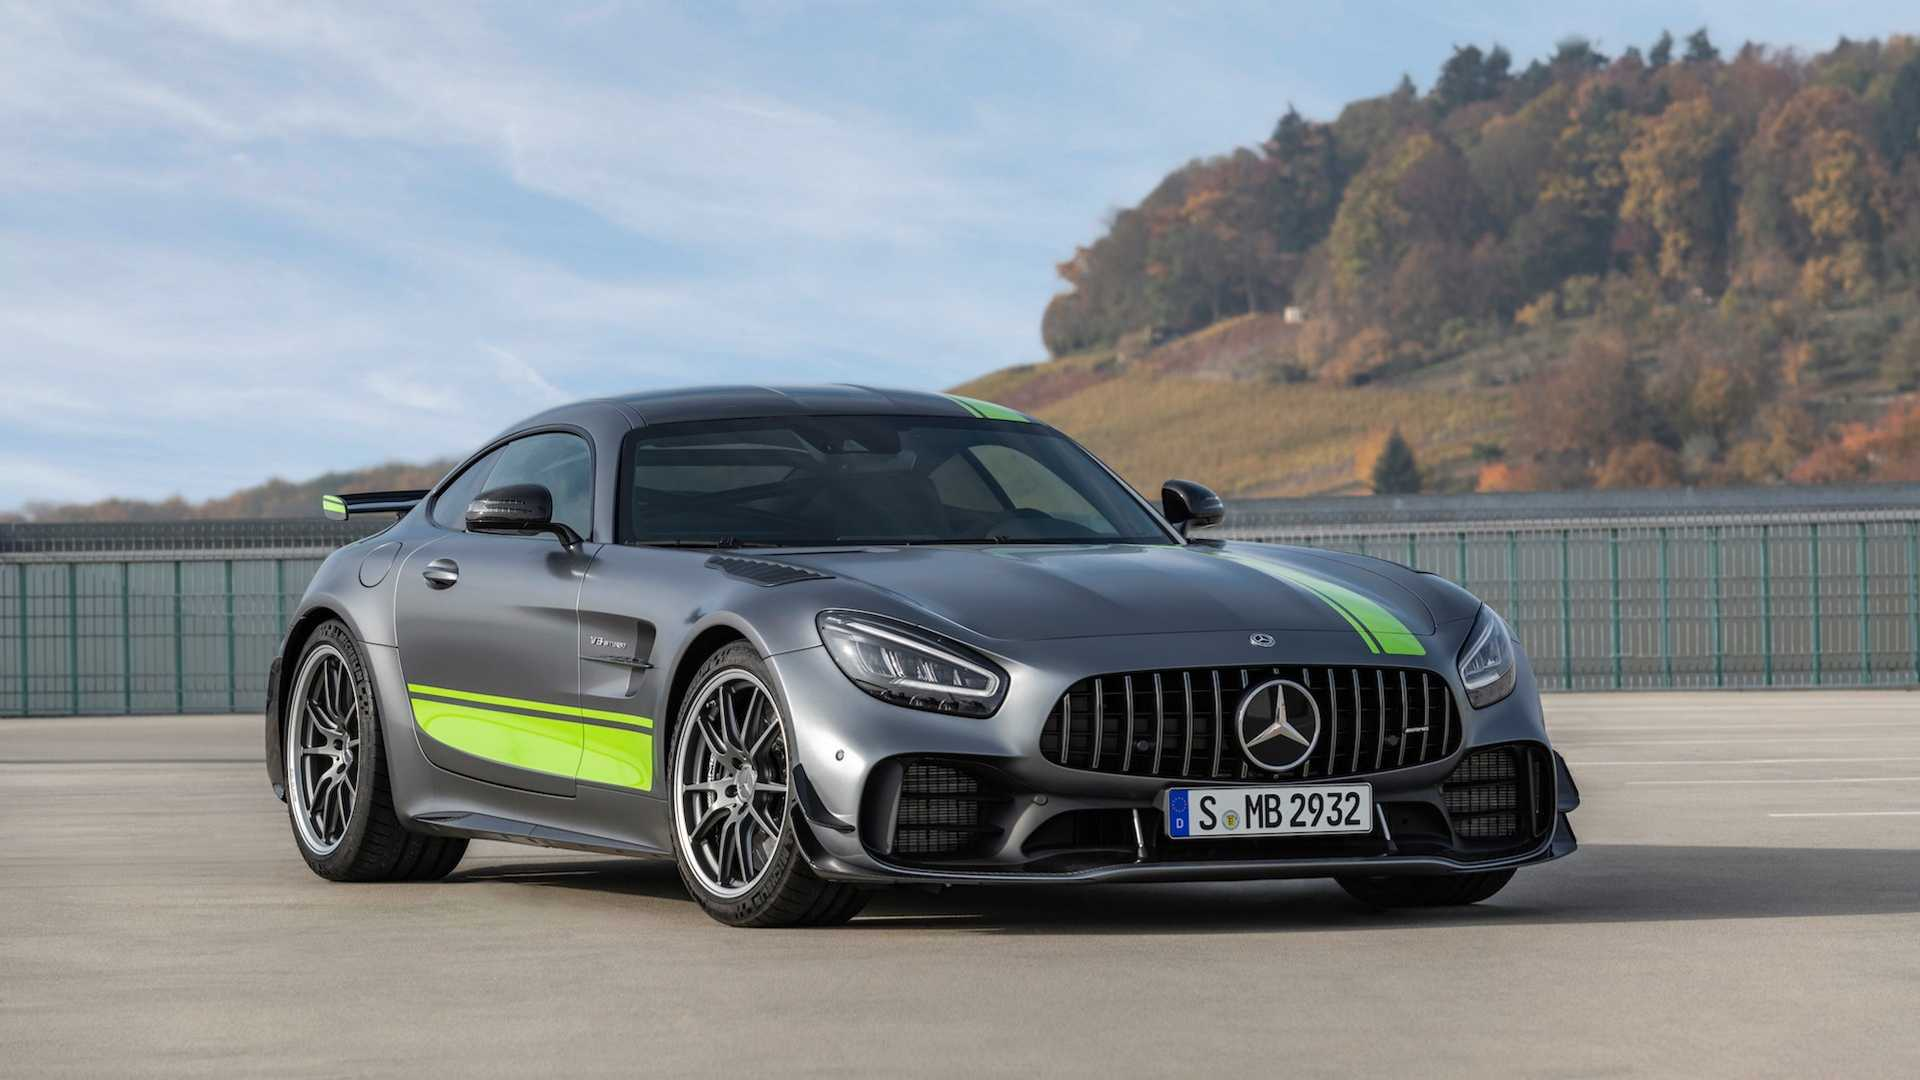 92 Great 2020 Mercedes Black Series Concept for 2020 Mercedes Black Series